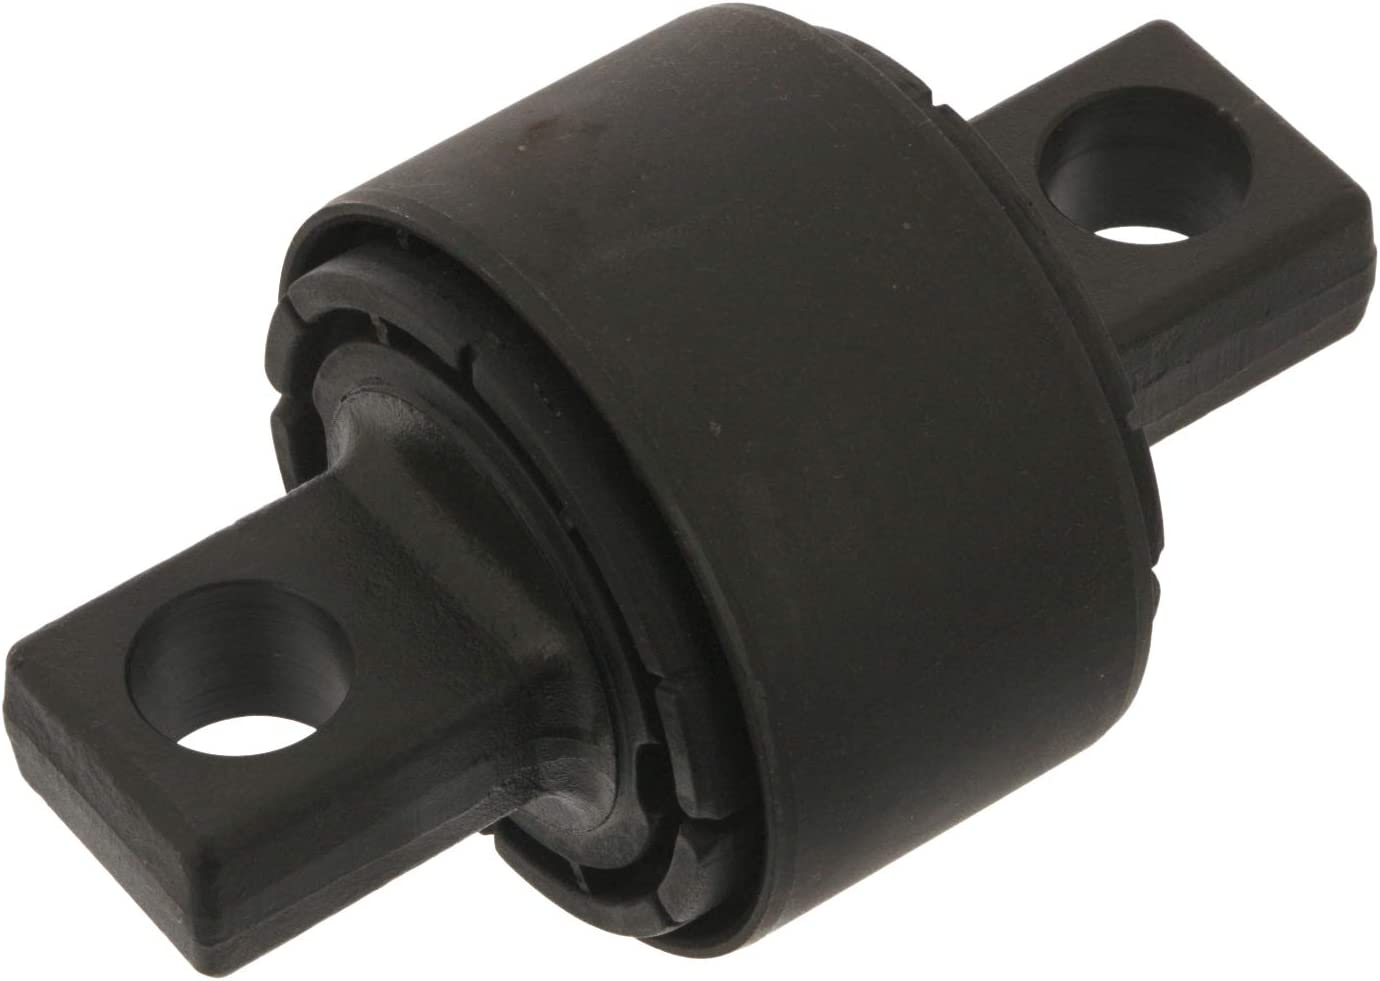 febi bilstein 40575 control arm with add-on material rear axle both sides, above Pack of 1